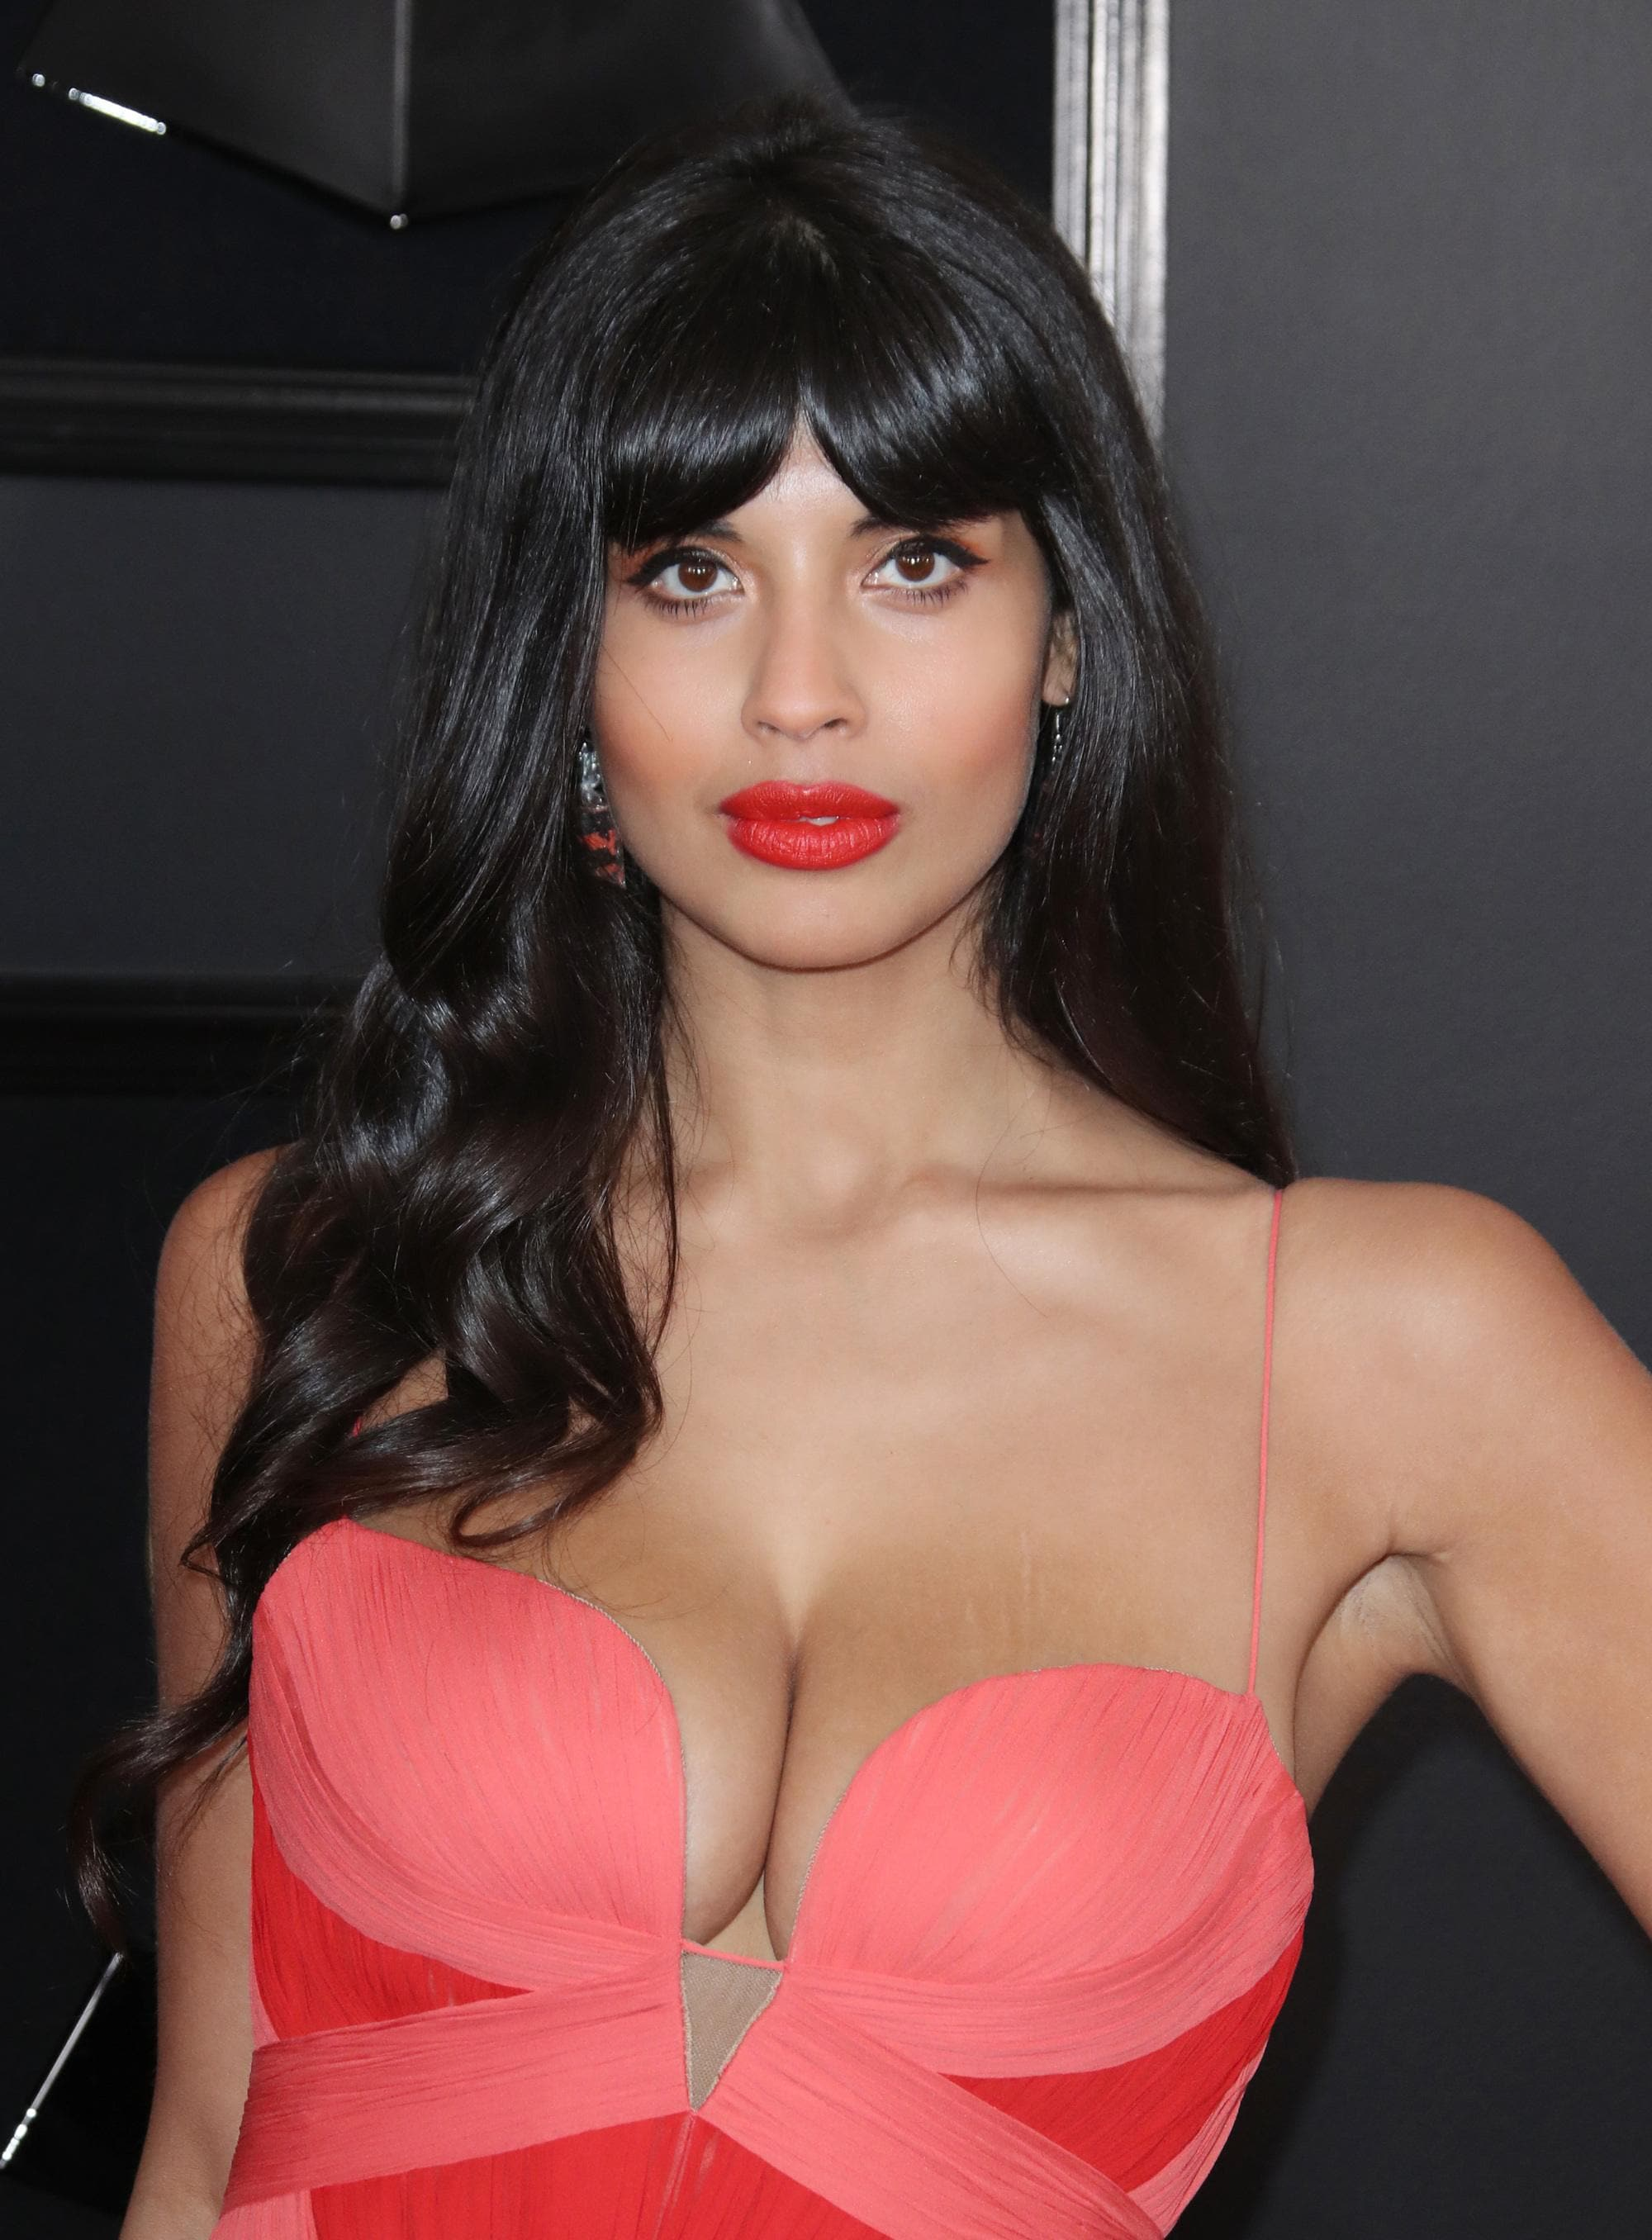 Jameela Jamil with long wavy black hair with '70s style bangs haircut, wearing a red dress with matching lipstick on the red carpet